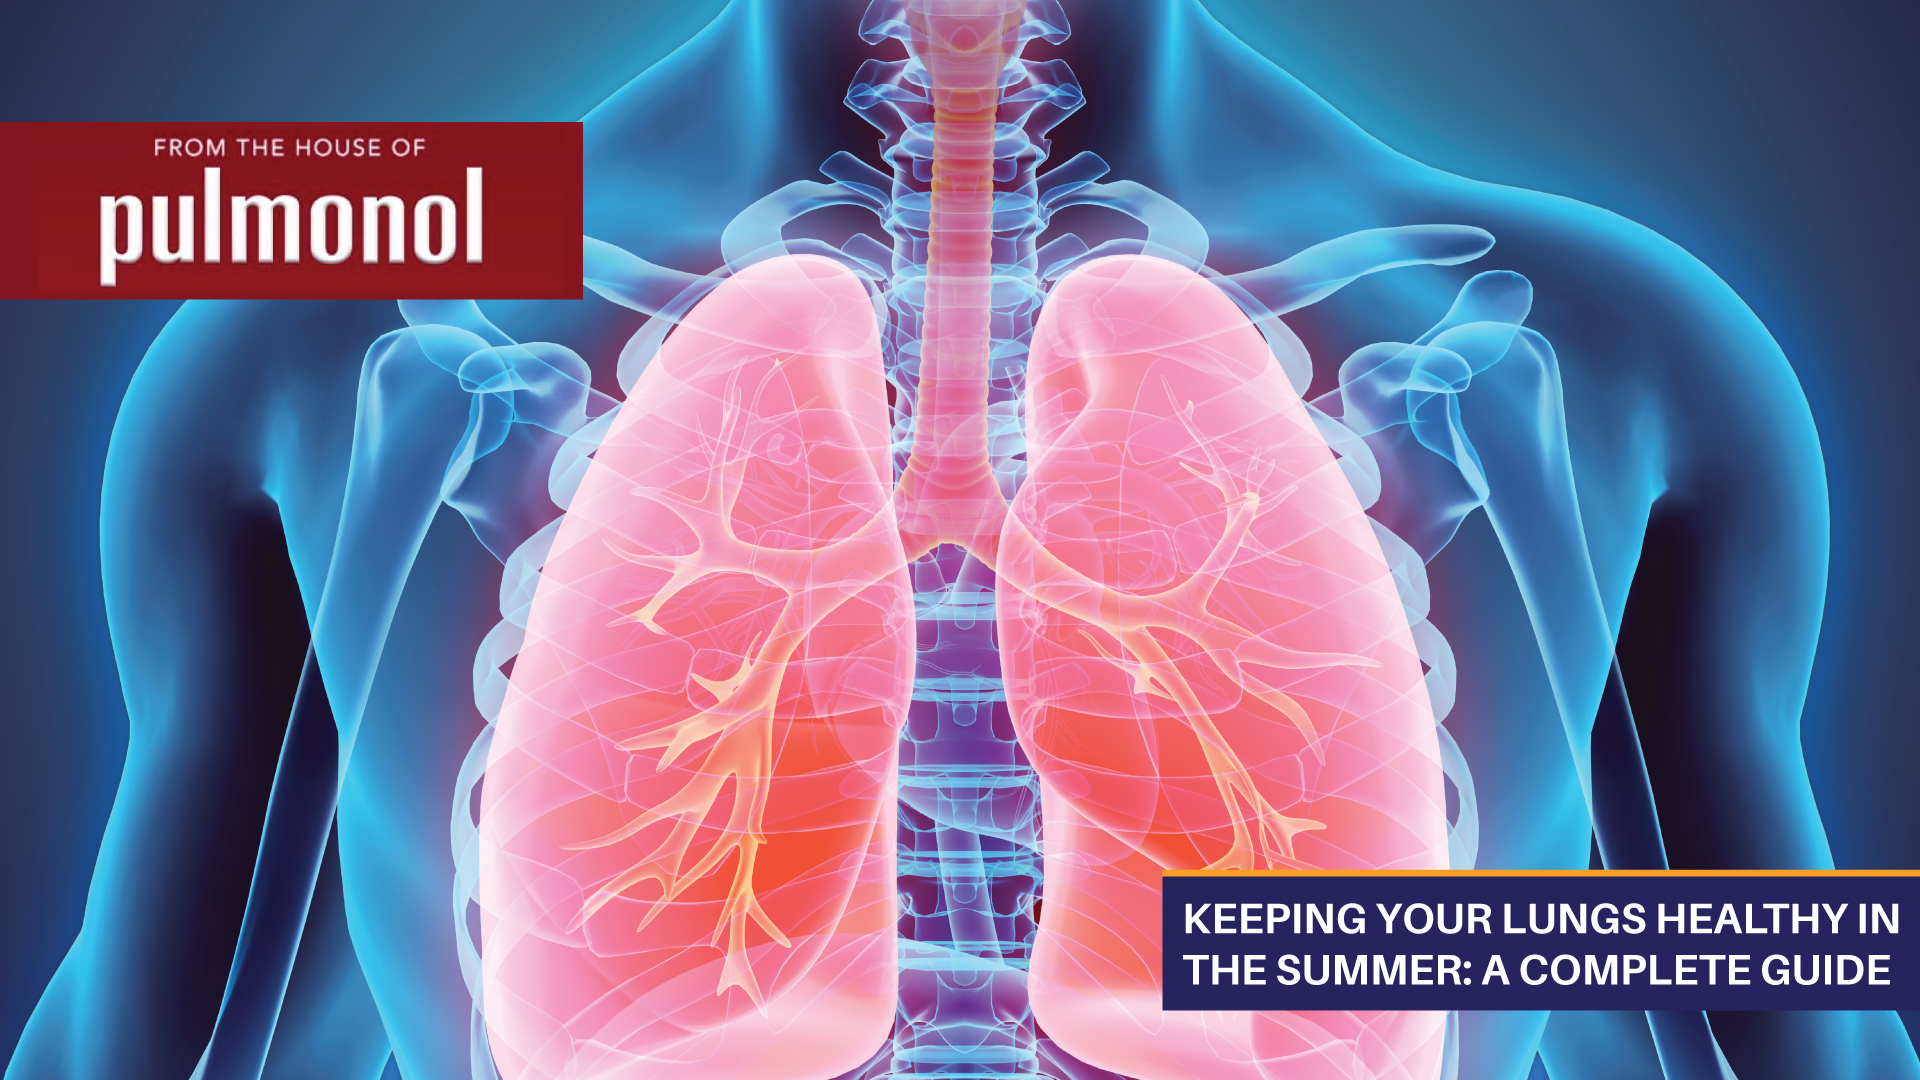 Keeping Your Lungs Healthy In The Summer: A Complete Guide